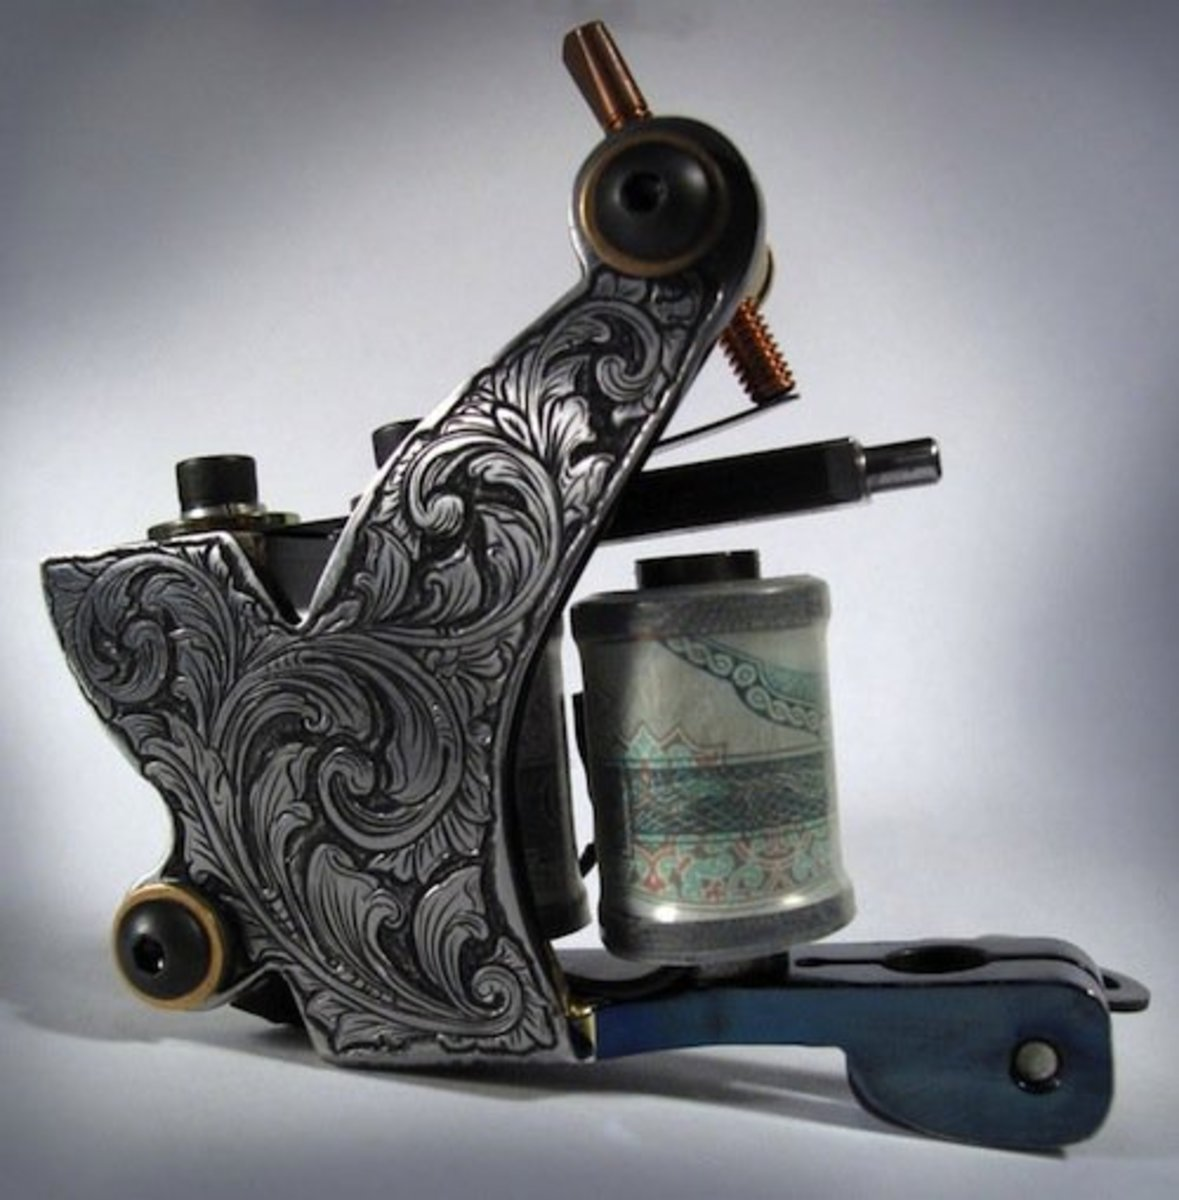 Coil tattoo machine by Tim Hendricks